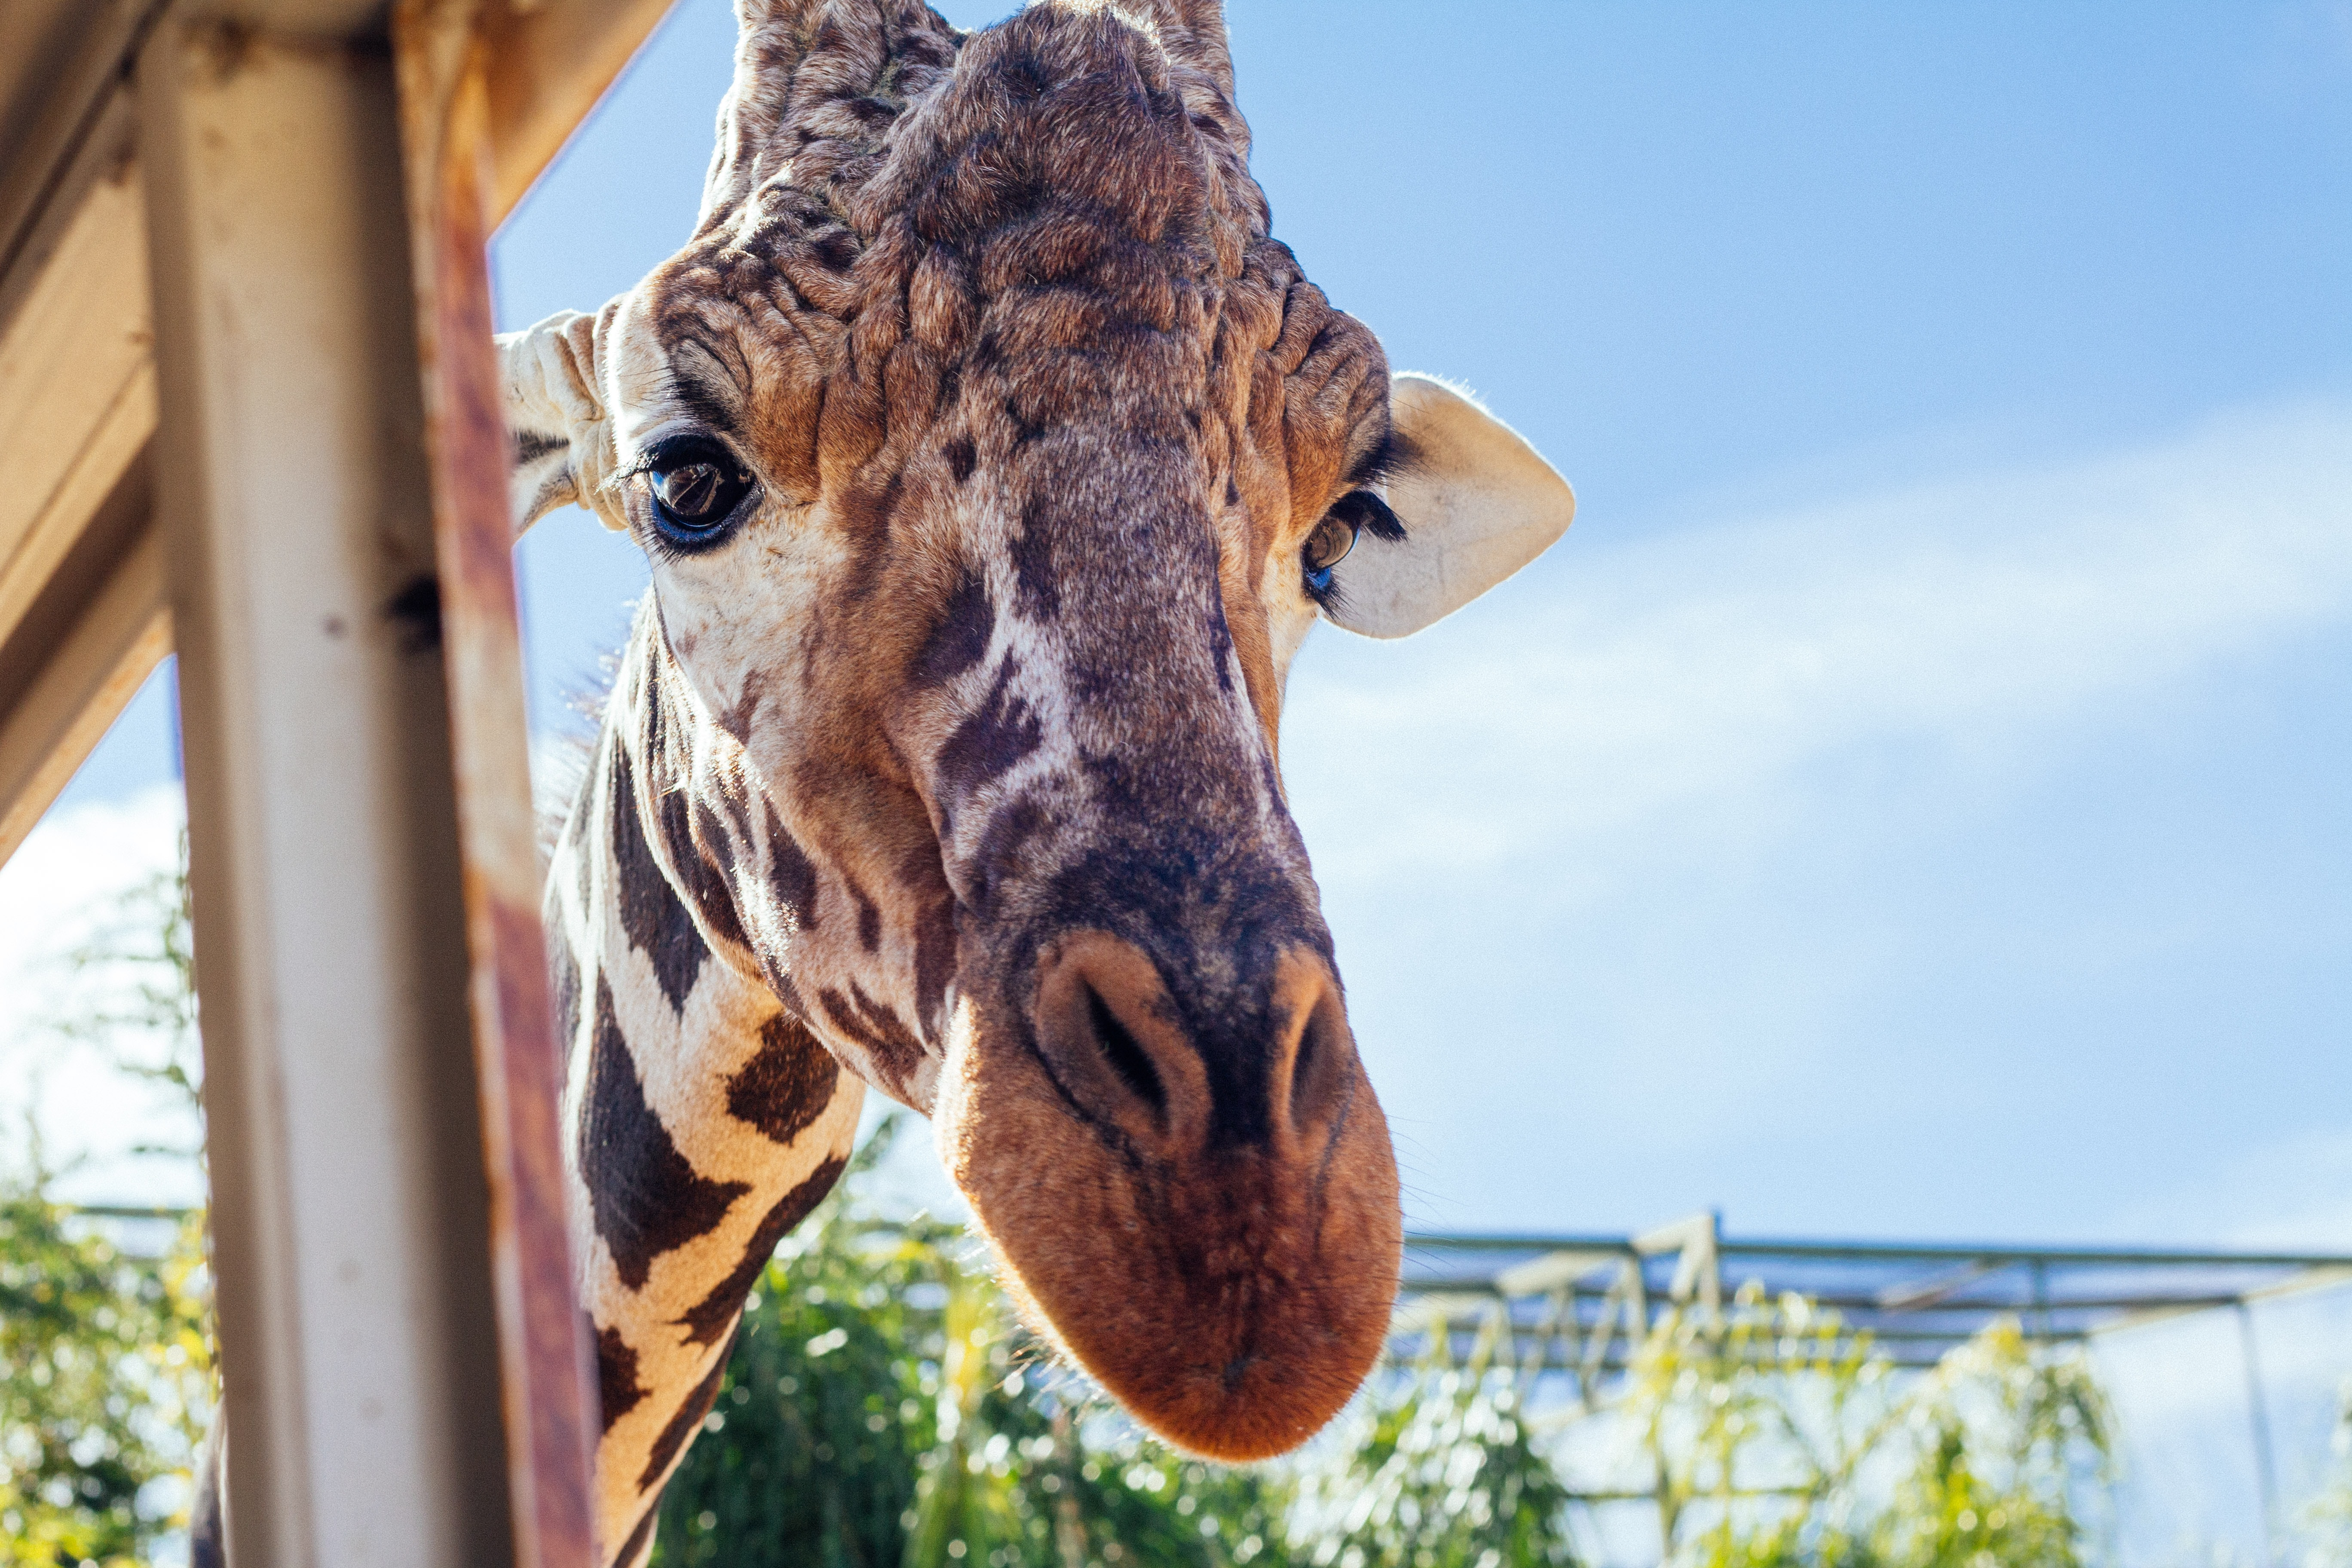 Giraffe's head photography during daytime